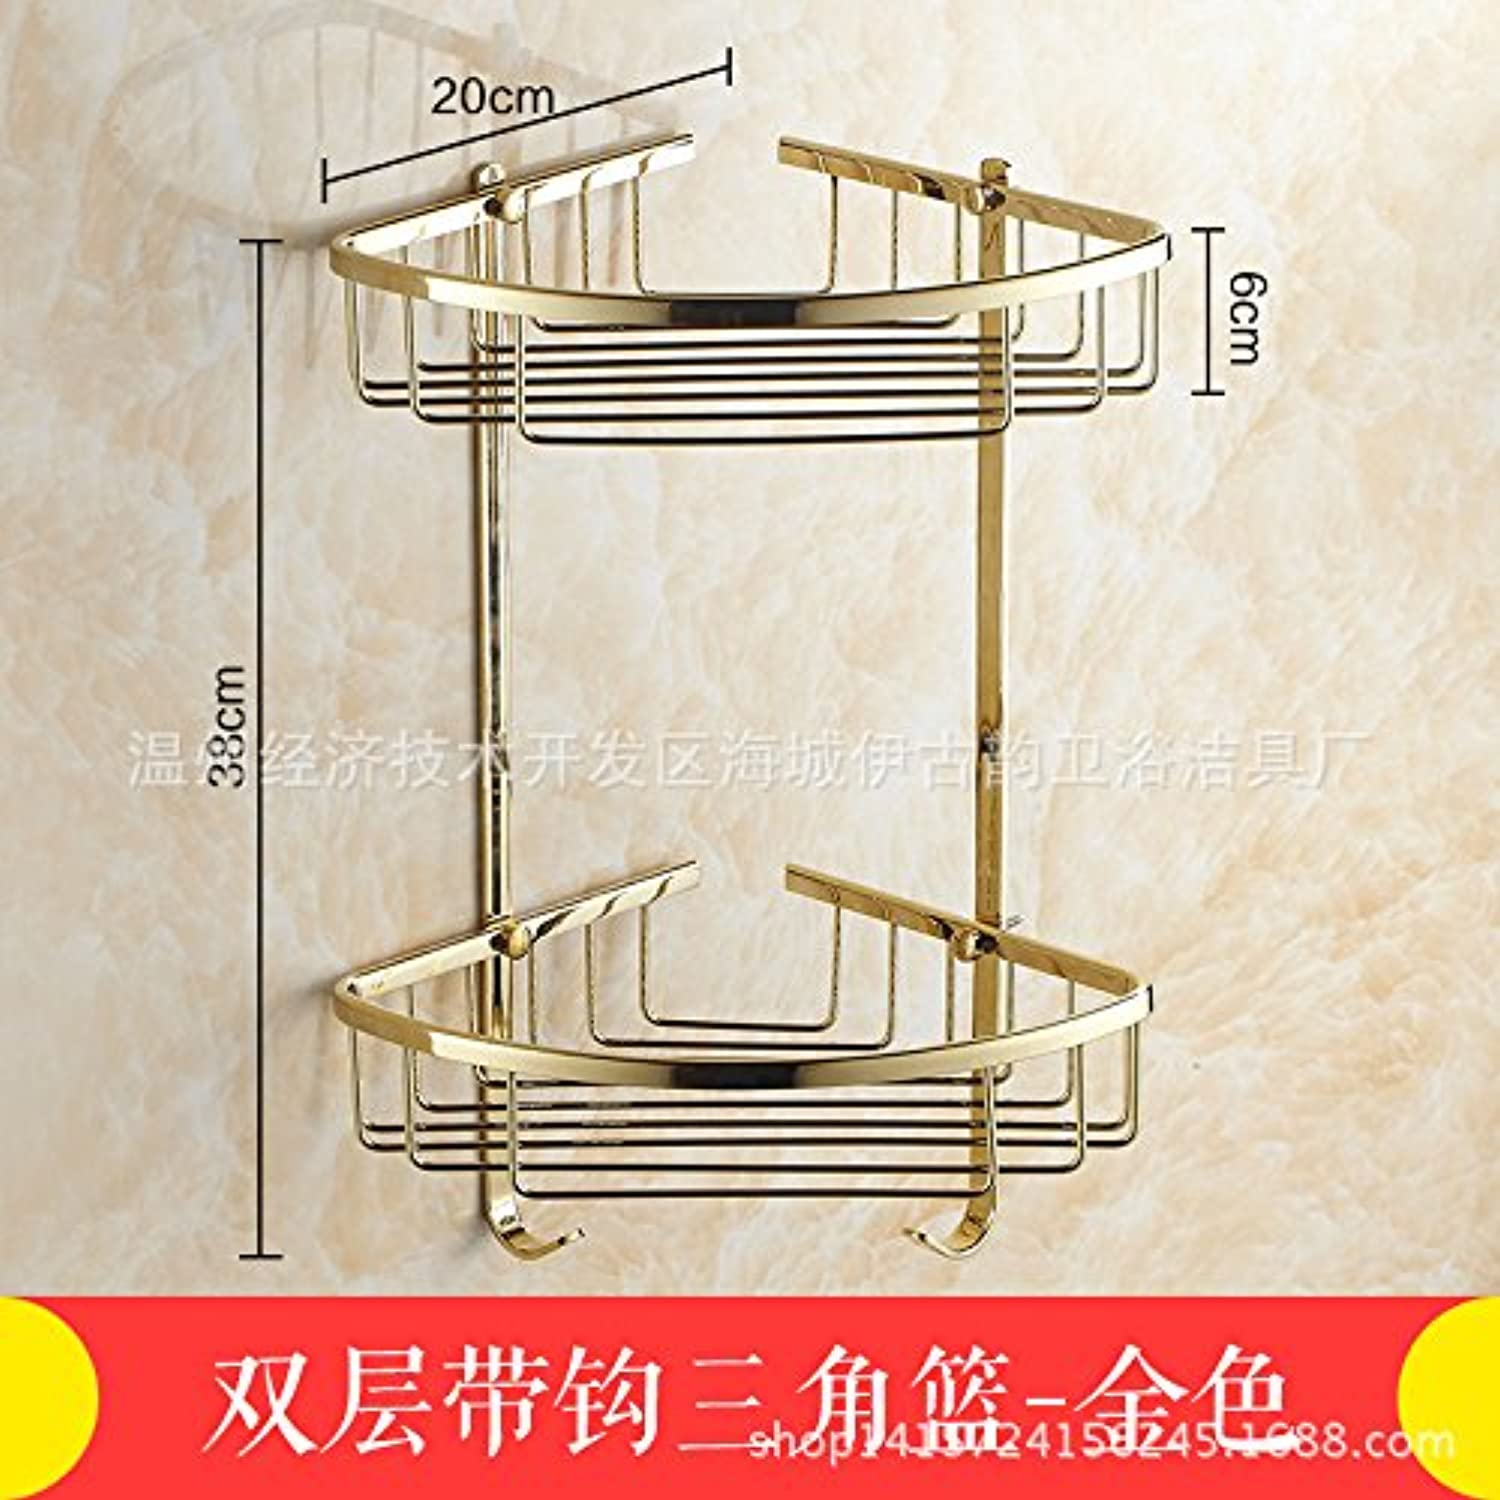 European antique copper bathroom racks racks of gold triangular basket bathroom accessories